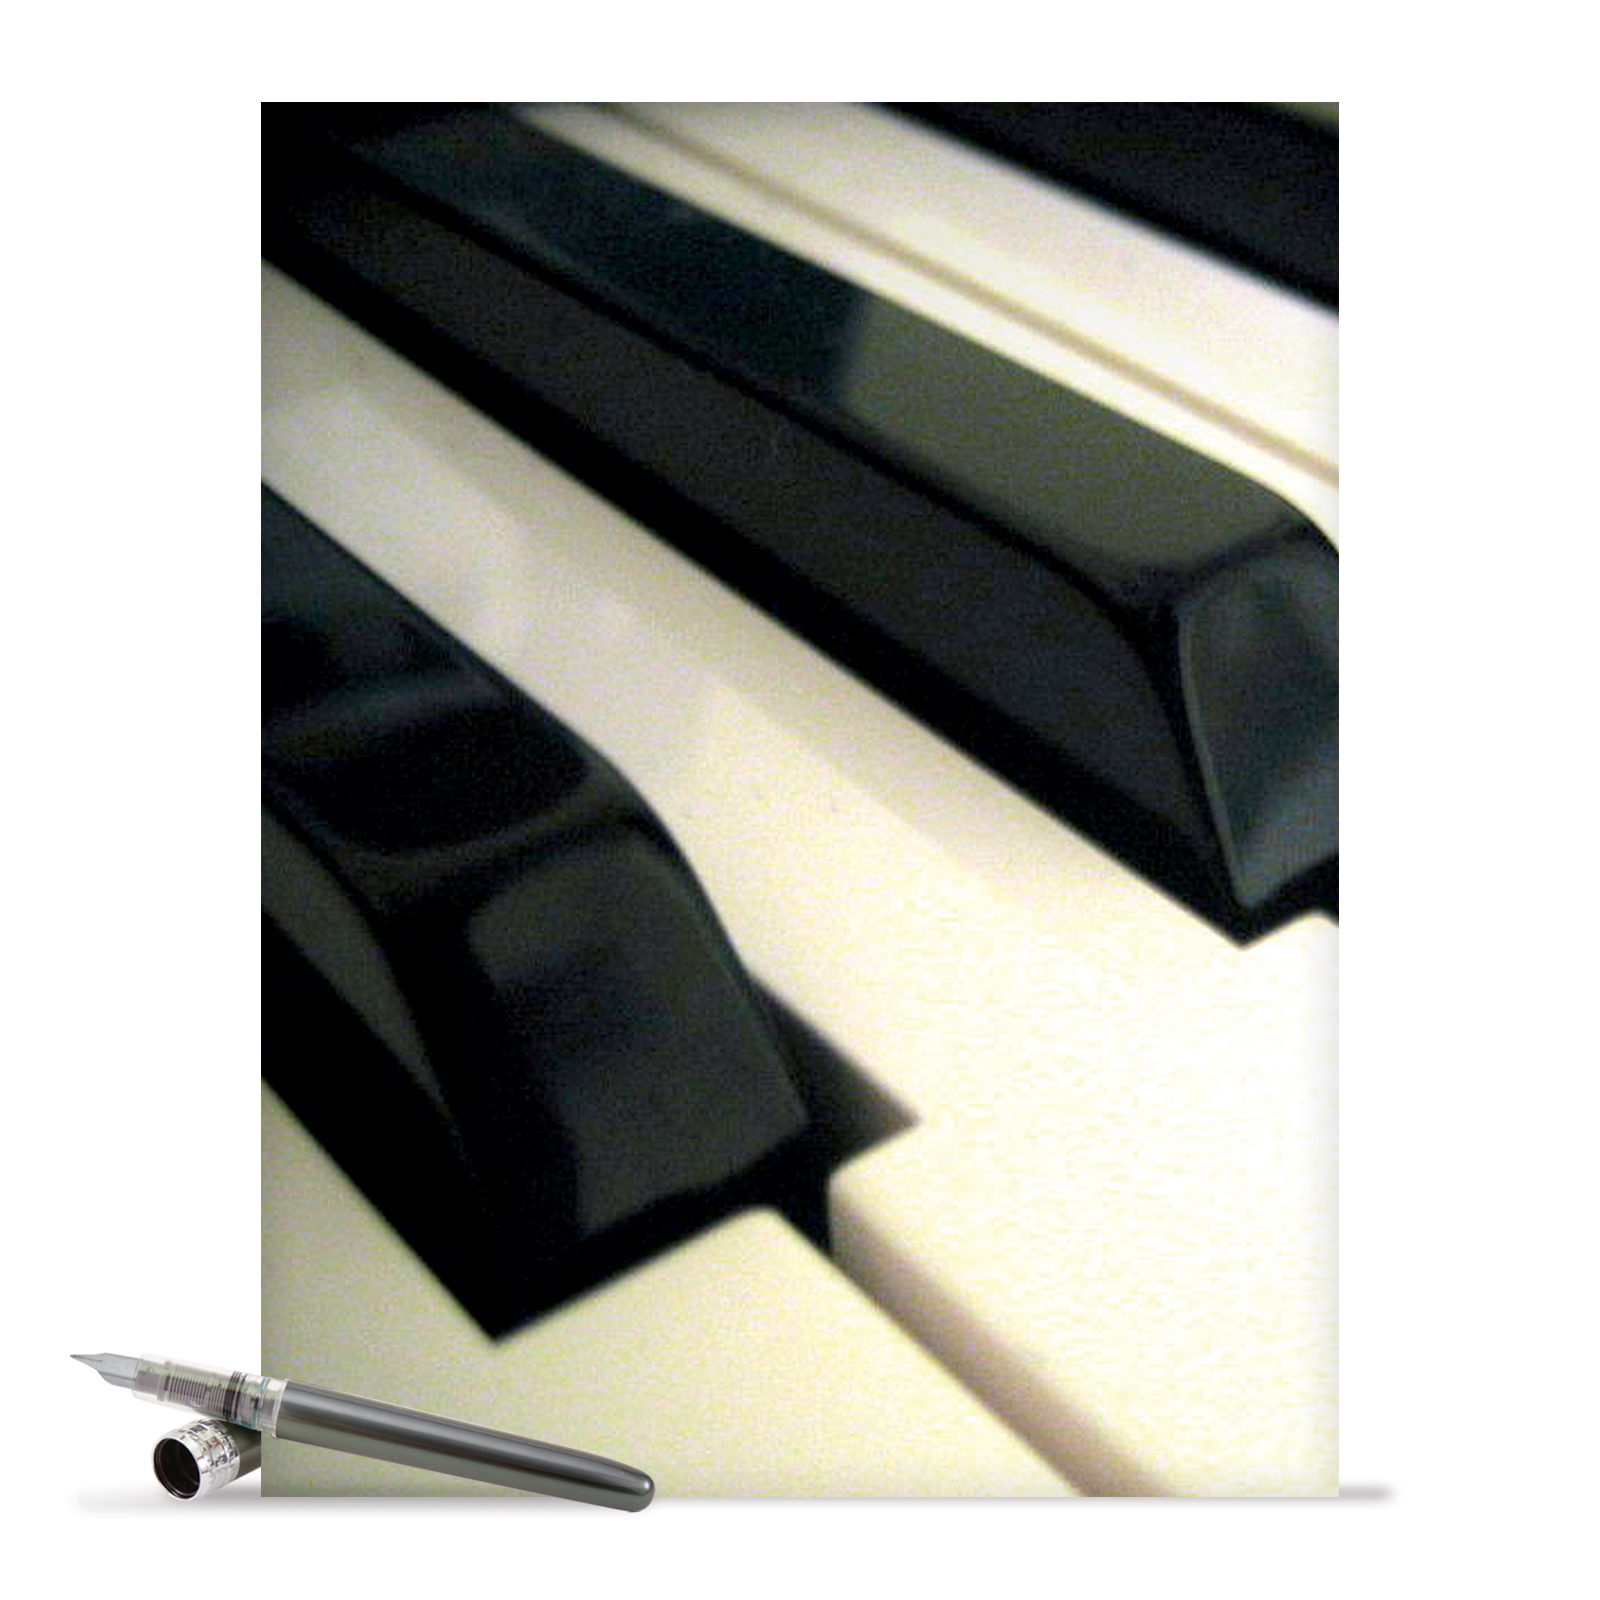 J2016ATYG Large Thank You Card: 'Keynotes' Featuring Ebony and Ivory Piano Keys Greeting Card with Envelope by The Best Card Company